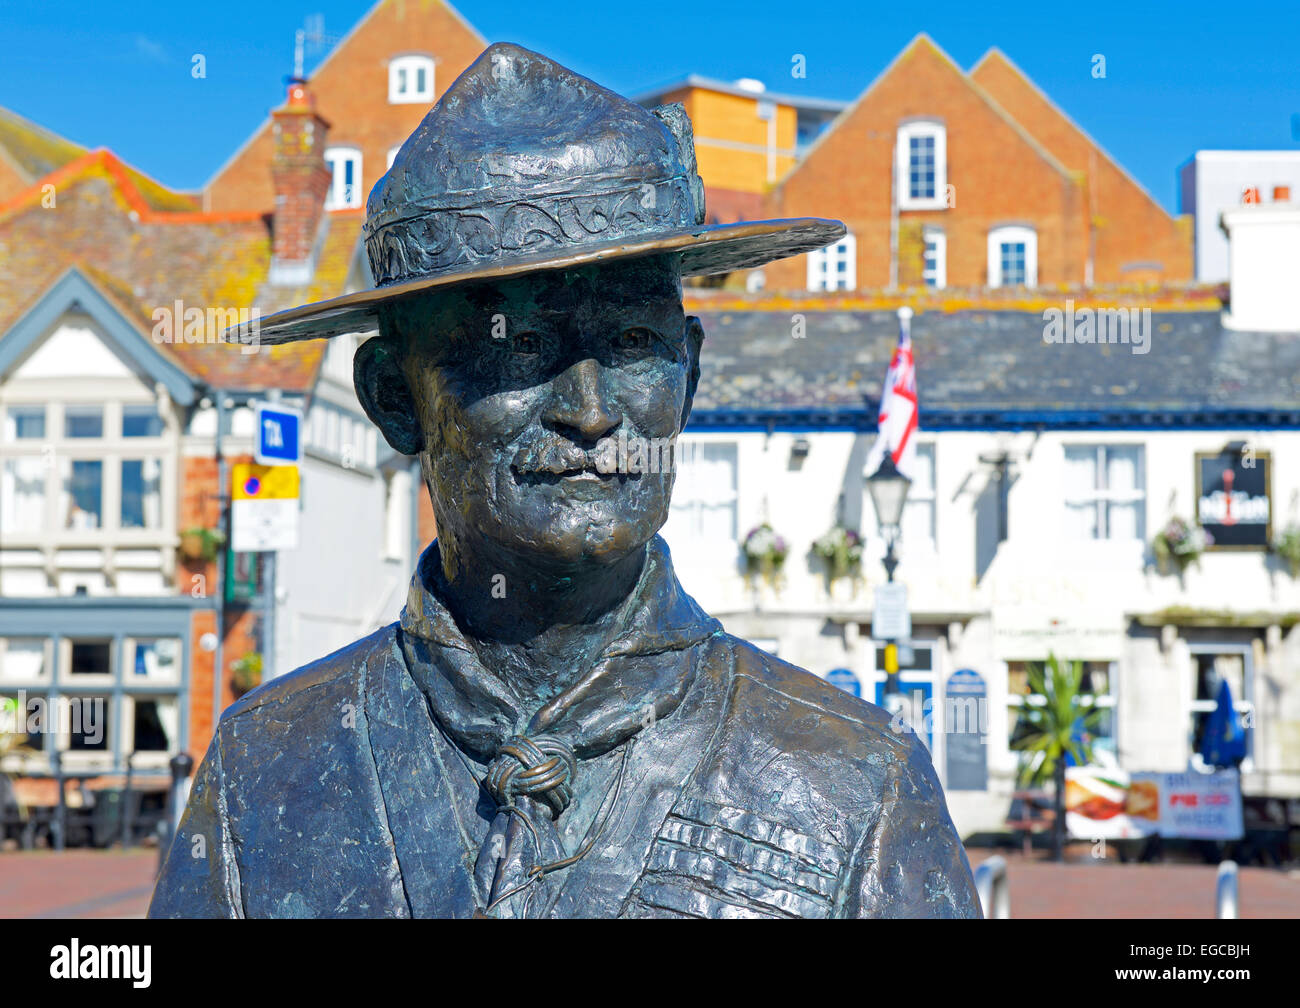 statue-of-lord-baden-powell-on-the-quayside-at-poole-dorset-england-EGCBJH.jpg